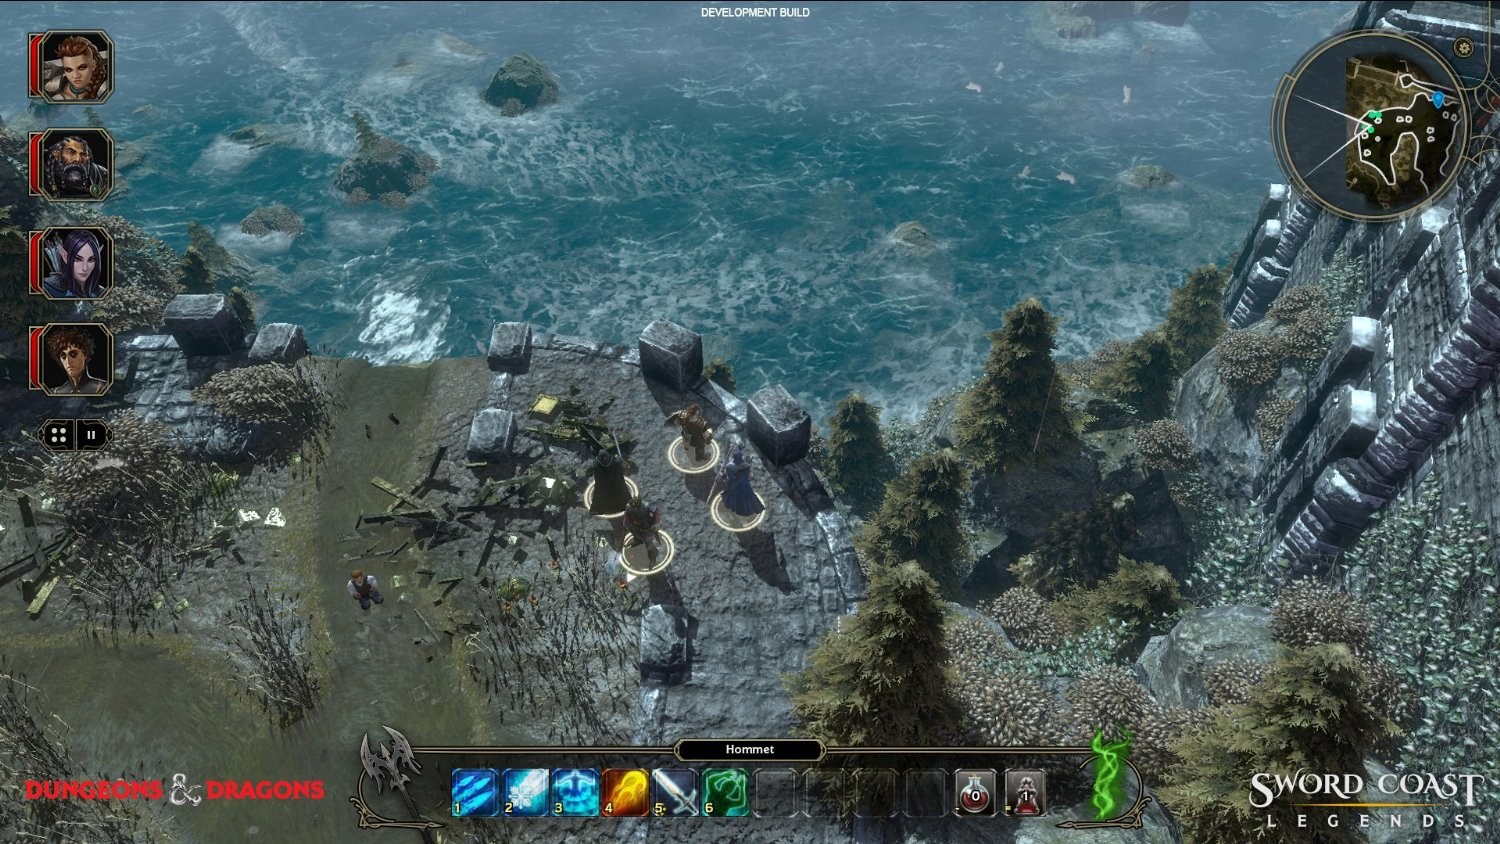 SWORD COAST LEGENDS - REG. FREE | MULTI-LANGUAGE